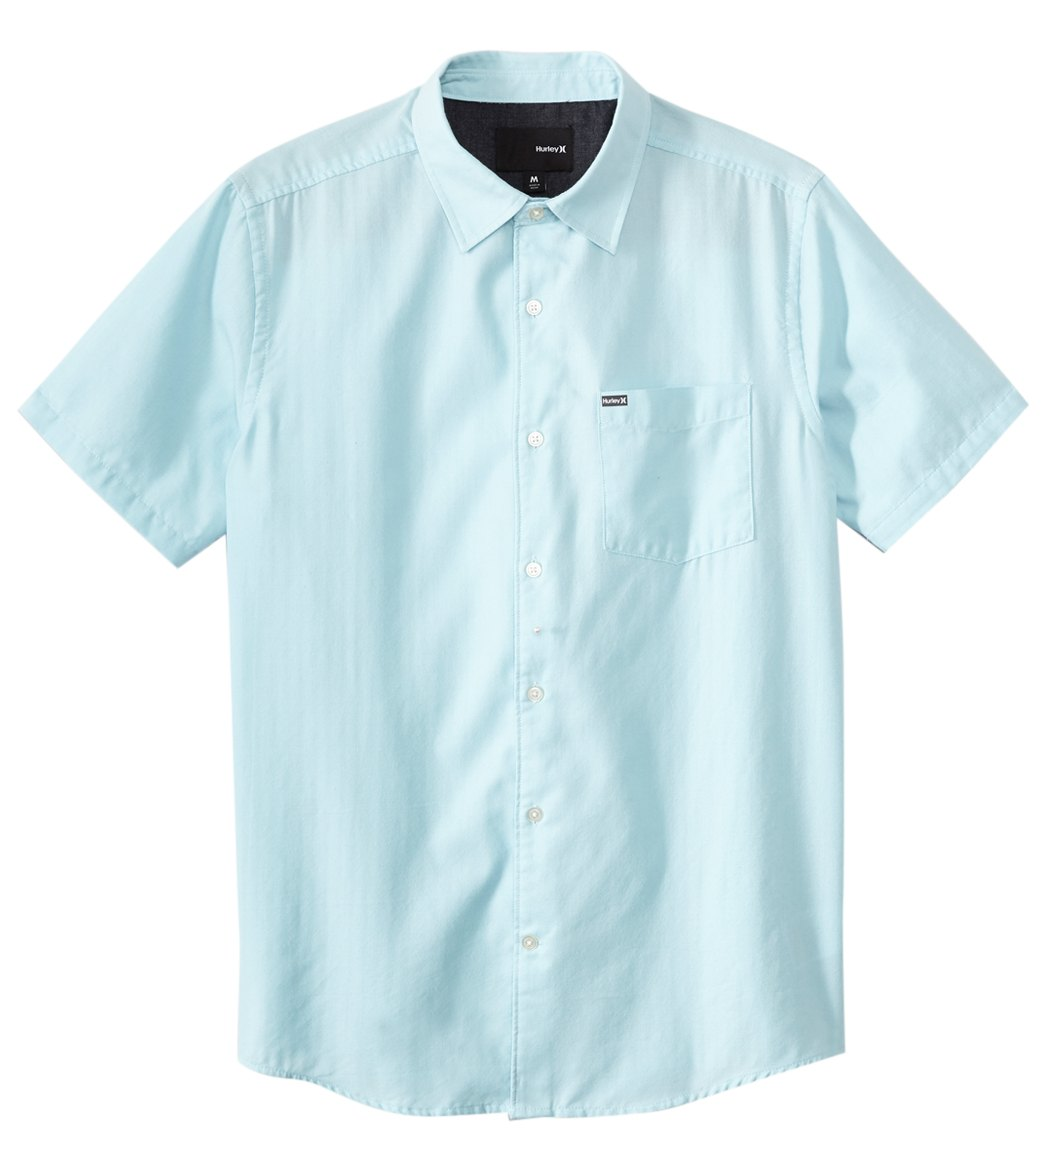 75395a4506 Hurley Men's One & Only 2.0 Short Sleeve Shirt